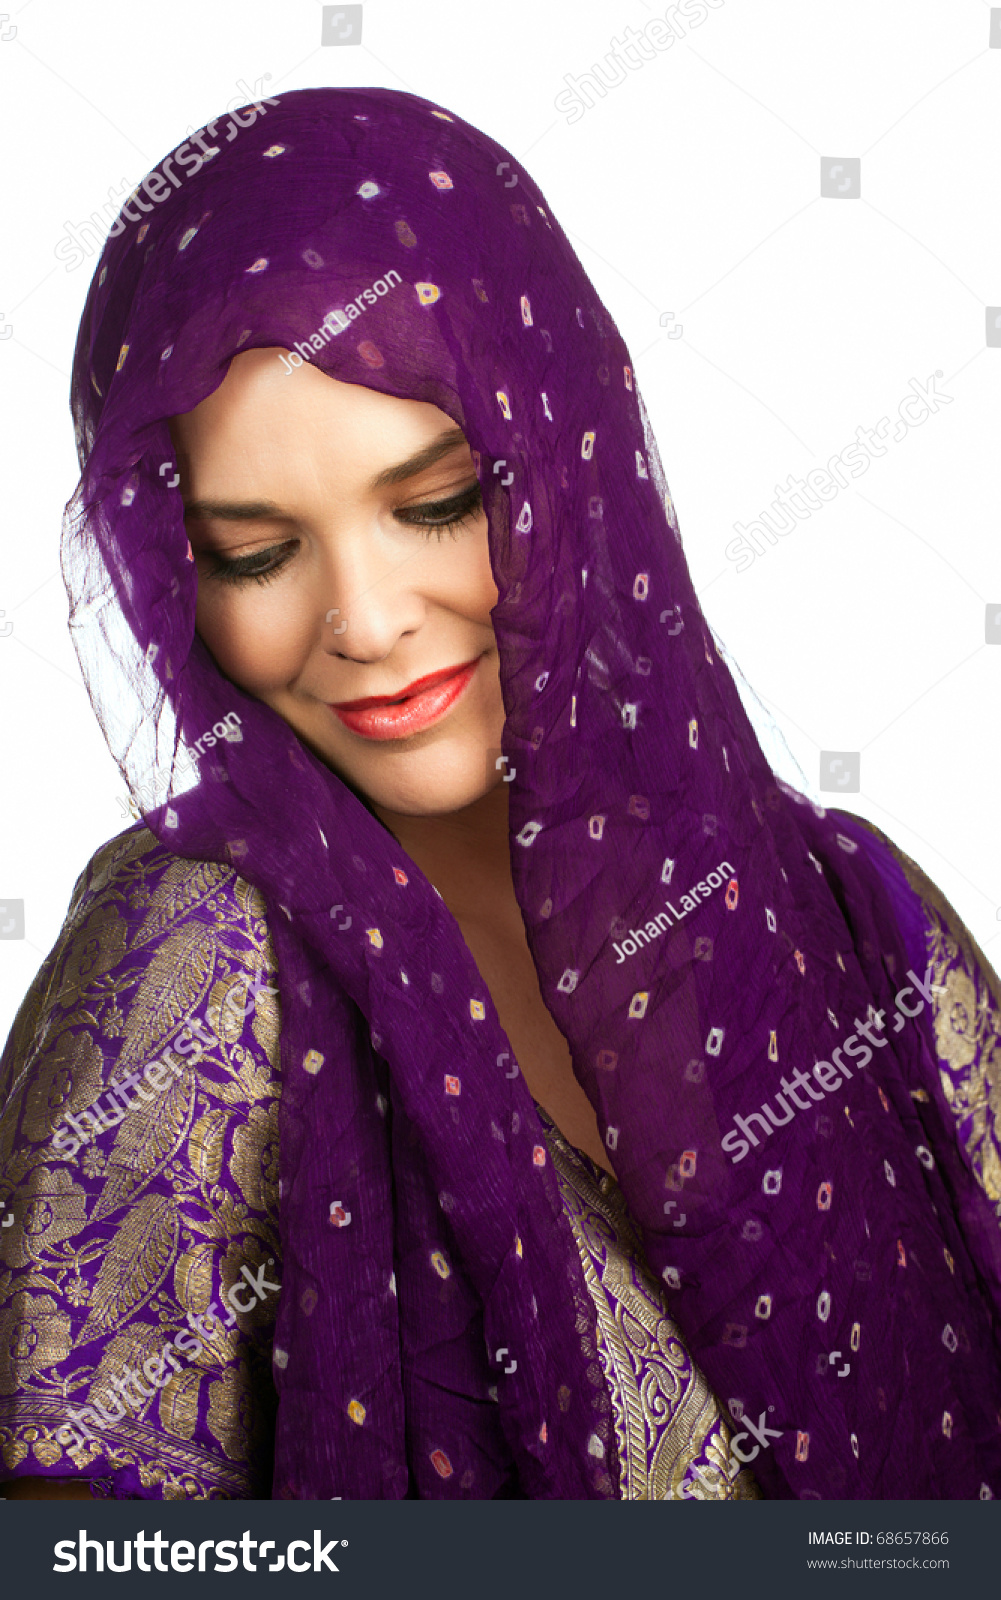 indian head asian single women Download 115 indian naked women stock photos for free or amazingly low rates  two amazon indian women,  girl with purple scarf covering her face asian women.